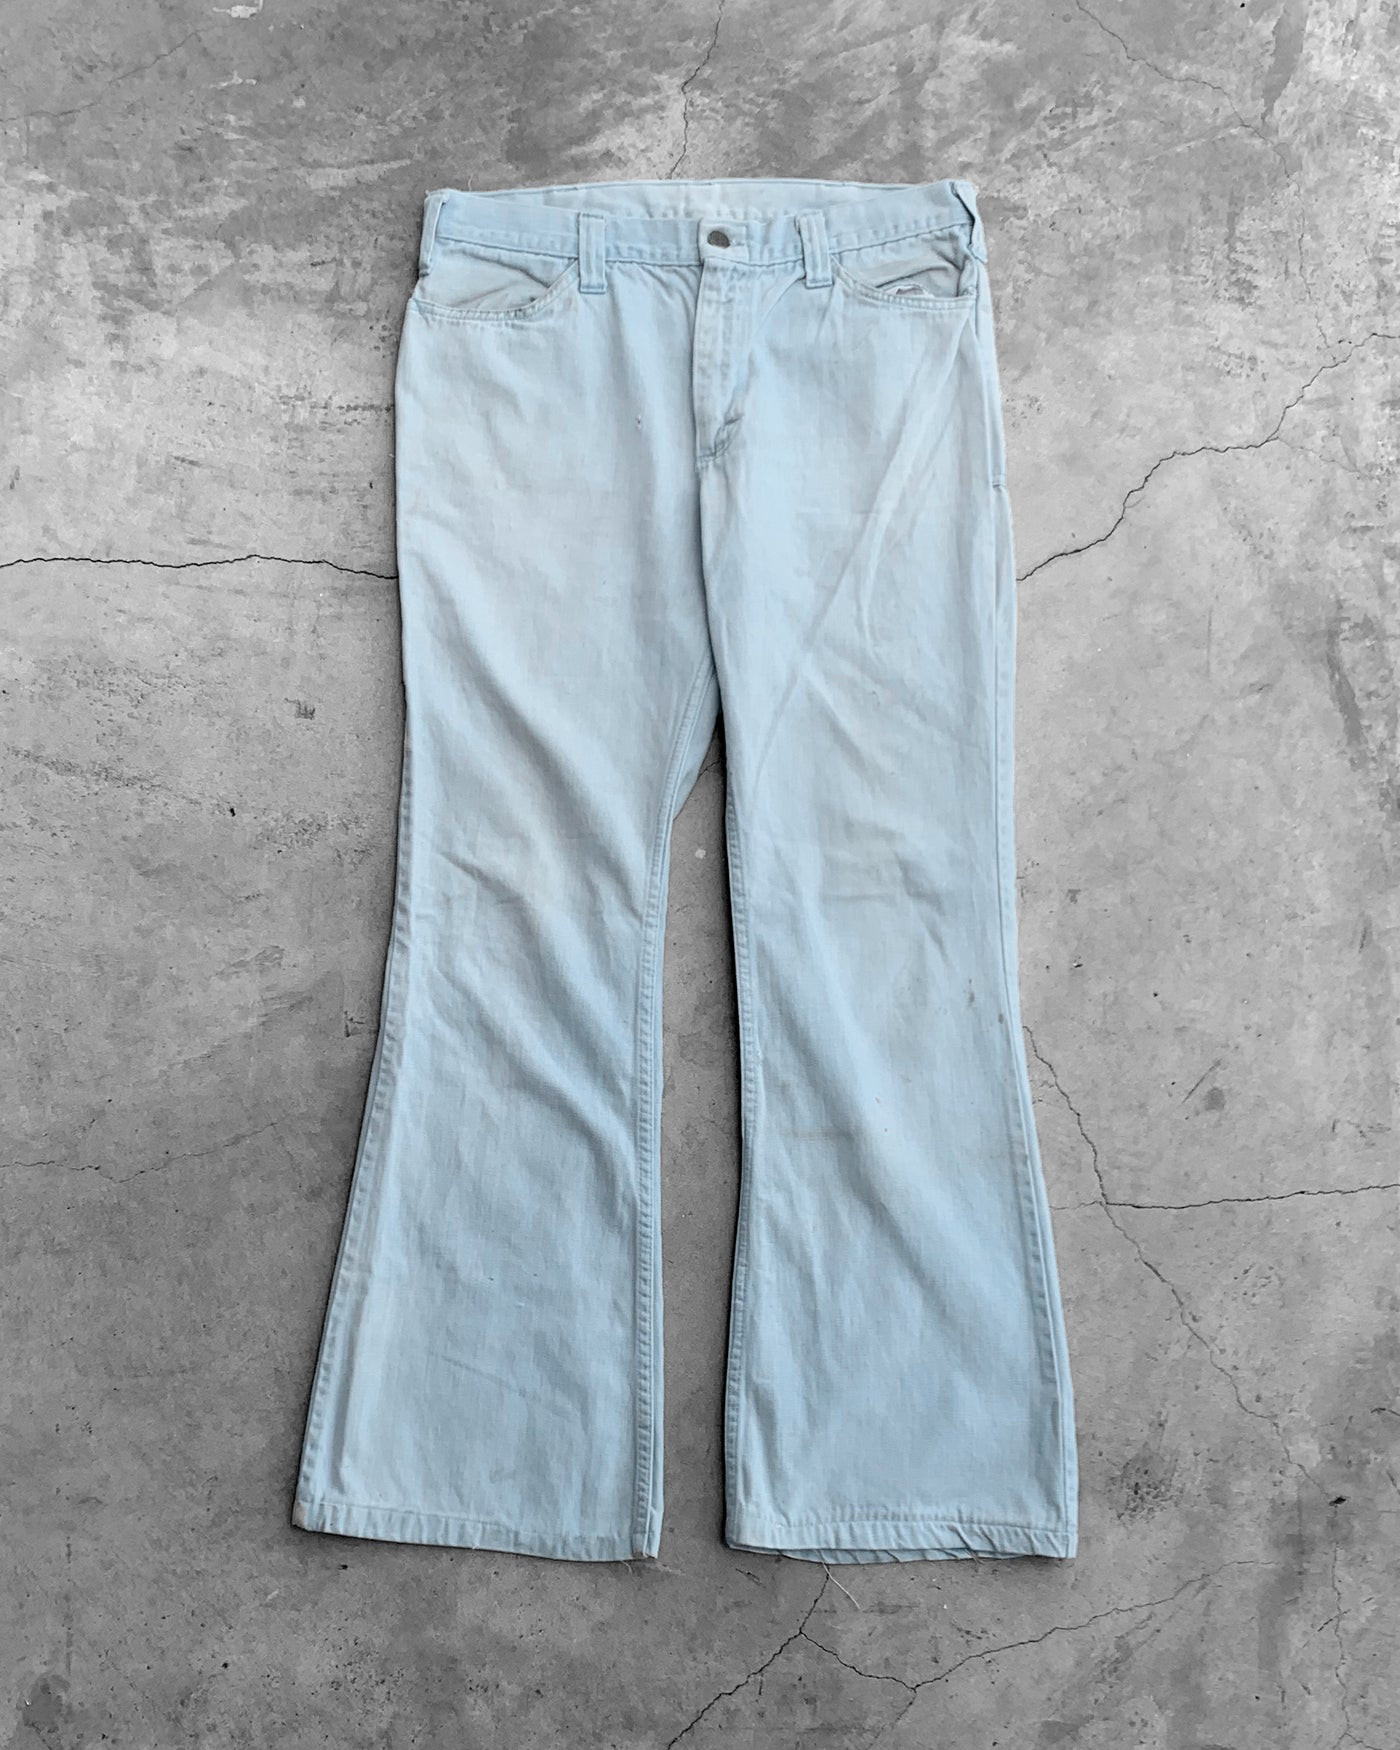 Lee Union Made Sky Blue Flared Pants - 1970s